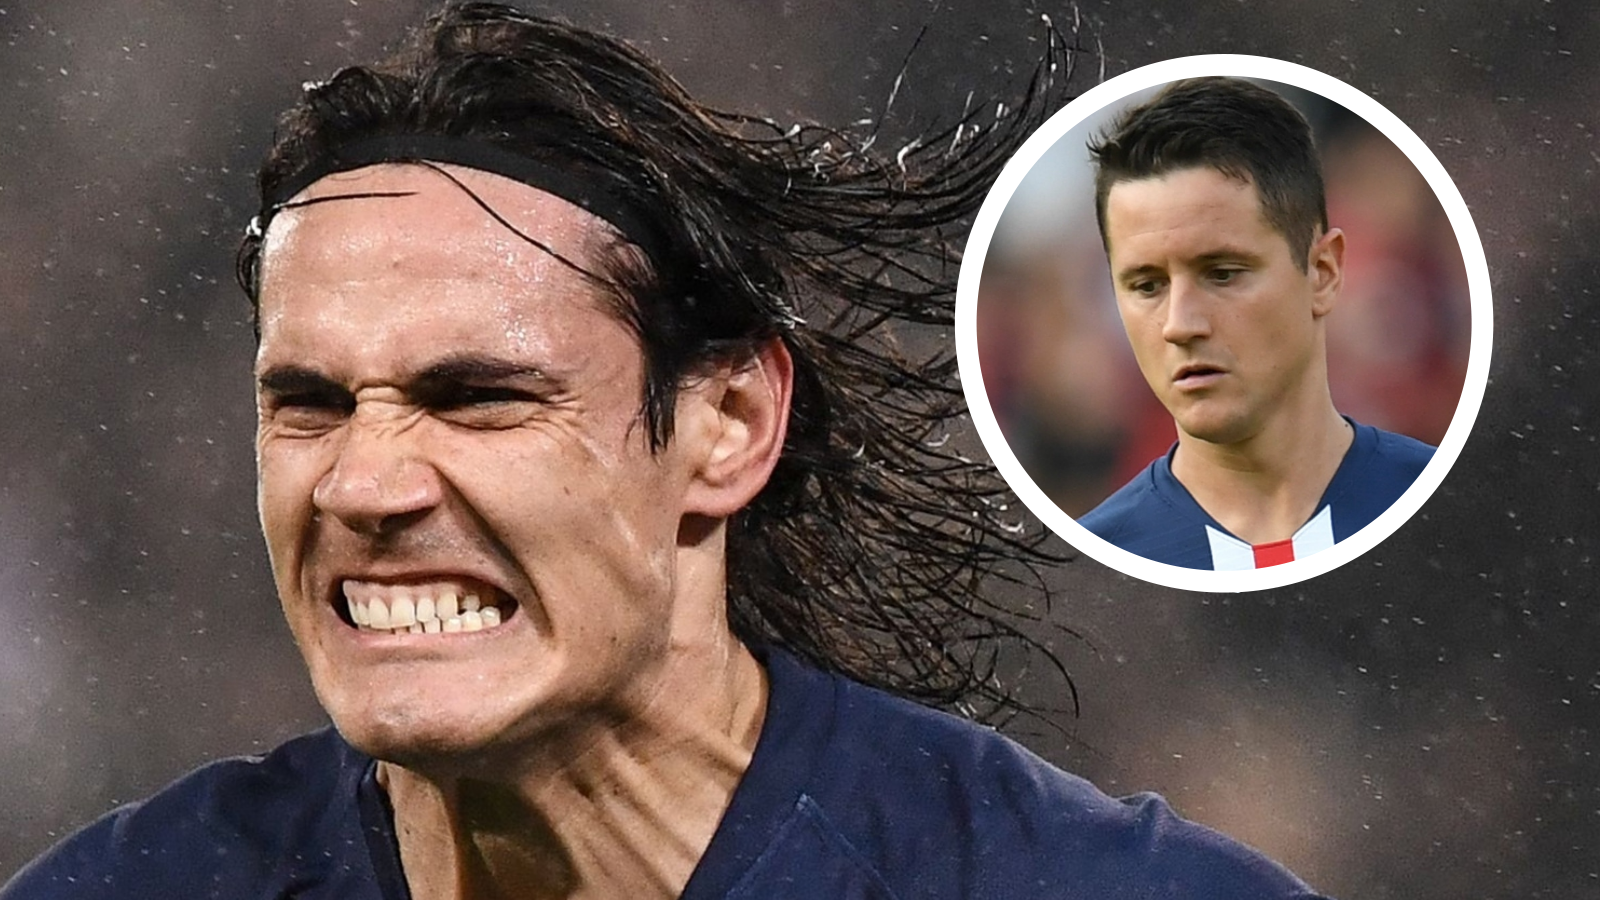 'I have a lot of admiration for Ander' - Ex-Manchester United star Herrera pushed me to Old Trafford move, says Cavani